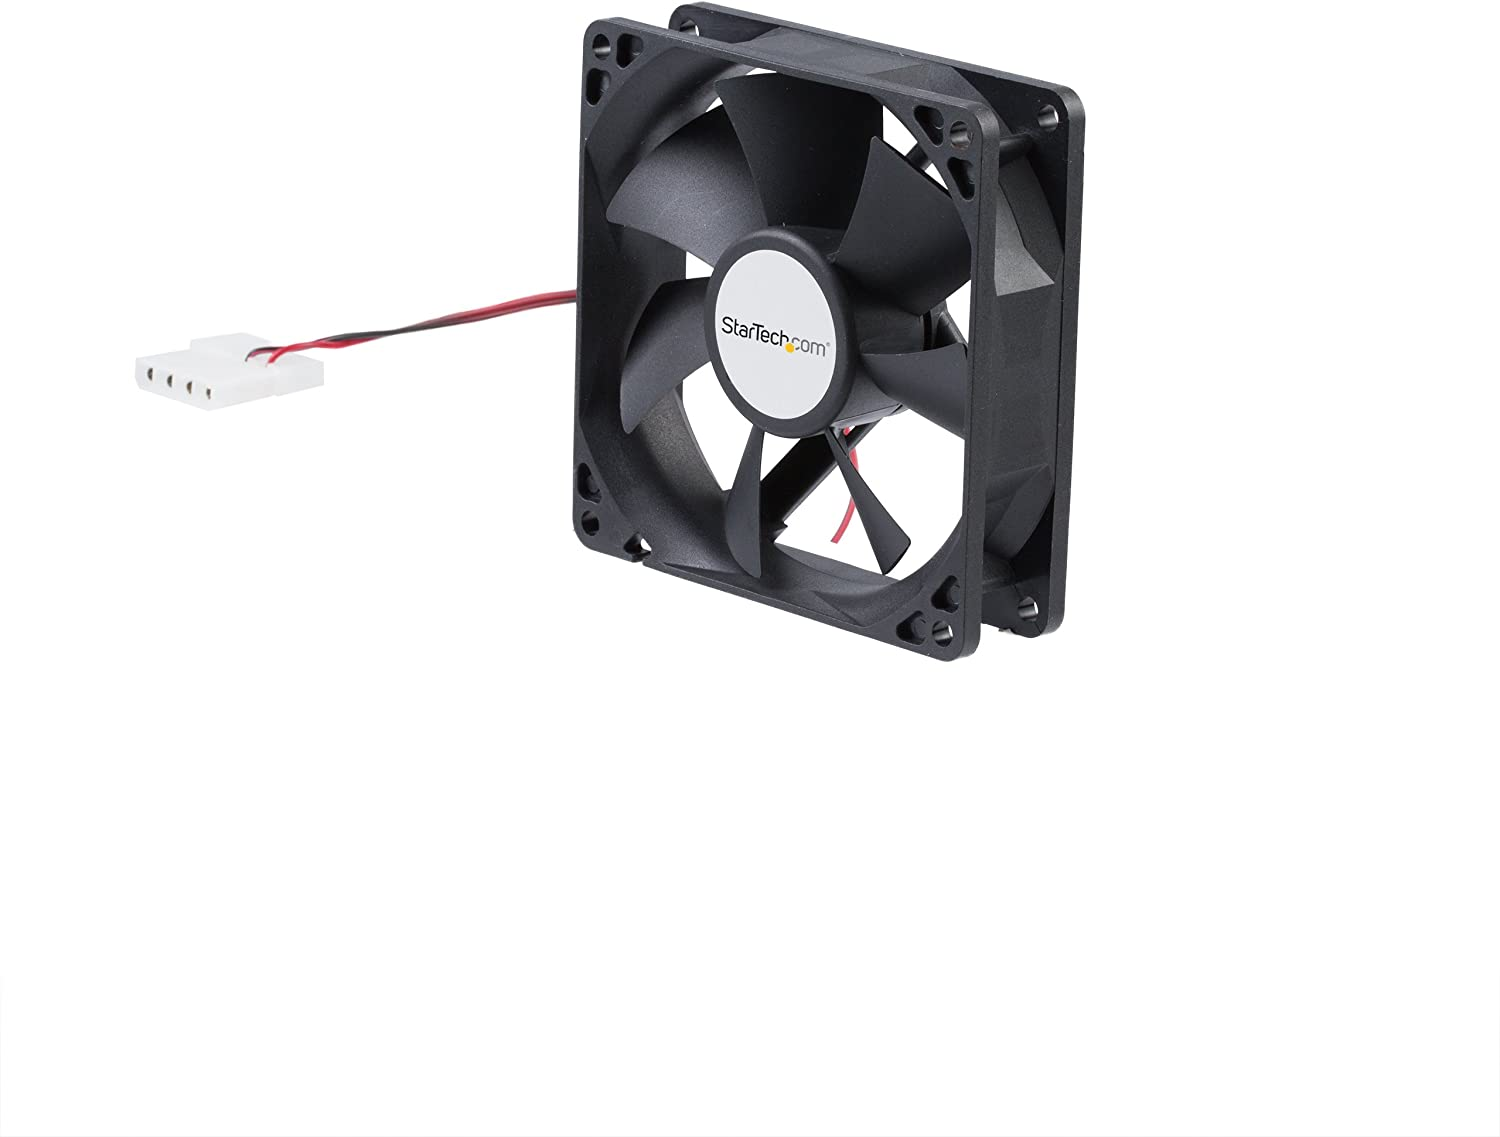 StarTech.com 92x25mm Dual Ball Bearing Computer Case Fan w/ LP4 Connector - 90mm Fan - computer case Fan - pc Fan (FANBOX92)